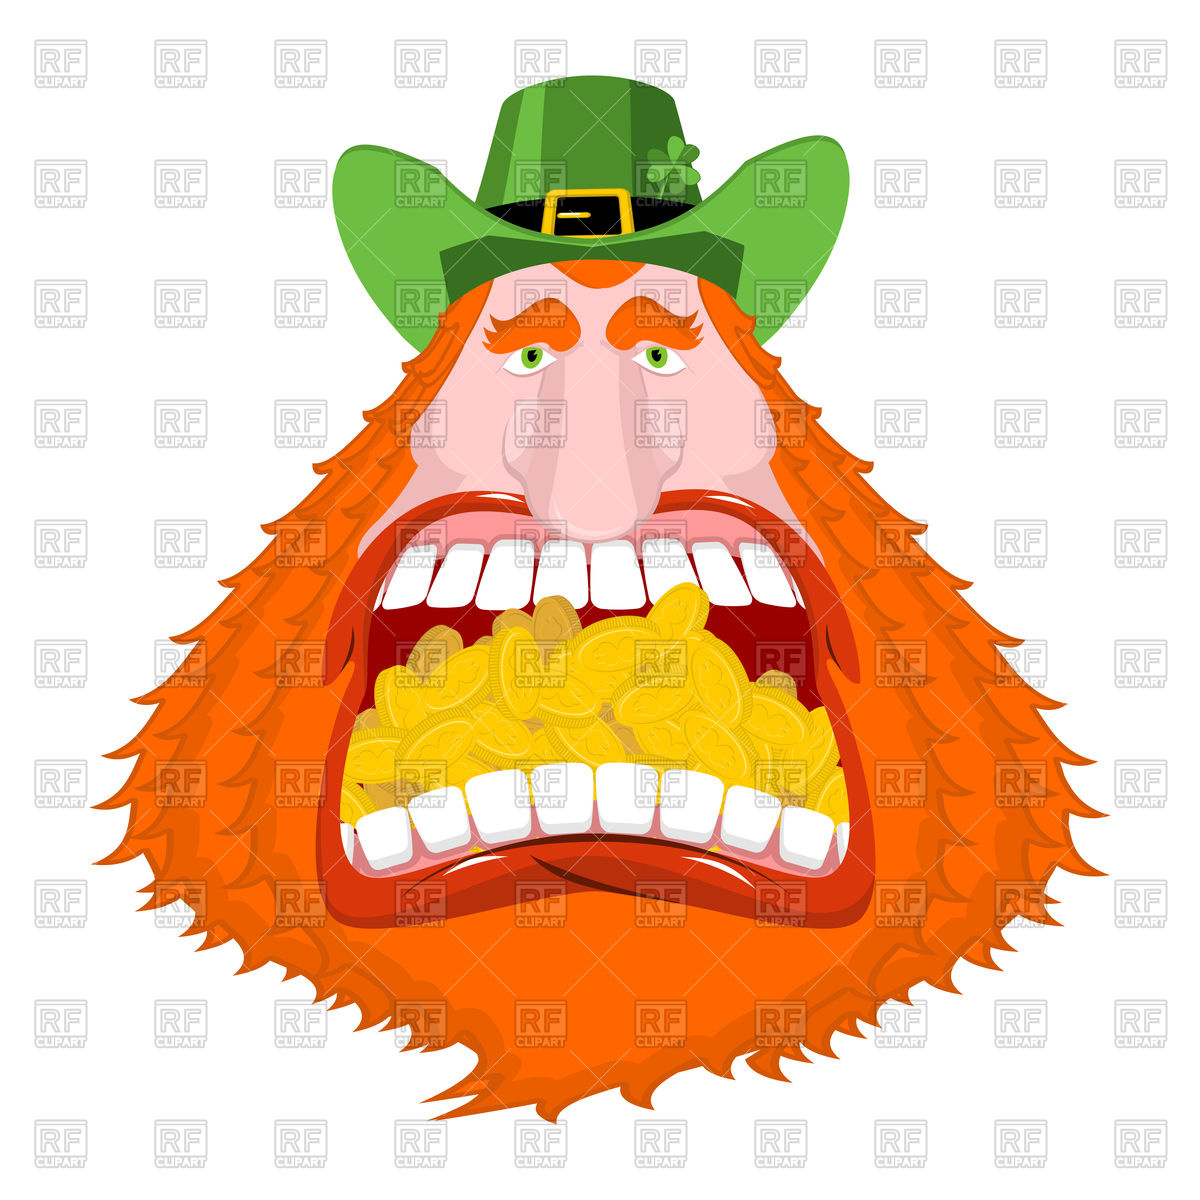 1200x1200 Leprechaun Gold In Mouth. Crazy Dwarf For St. Patrick's Day